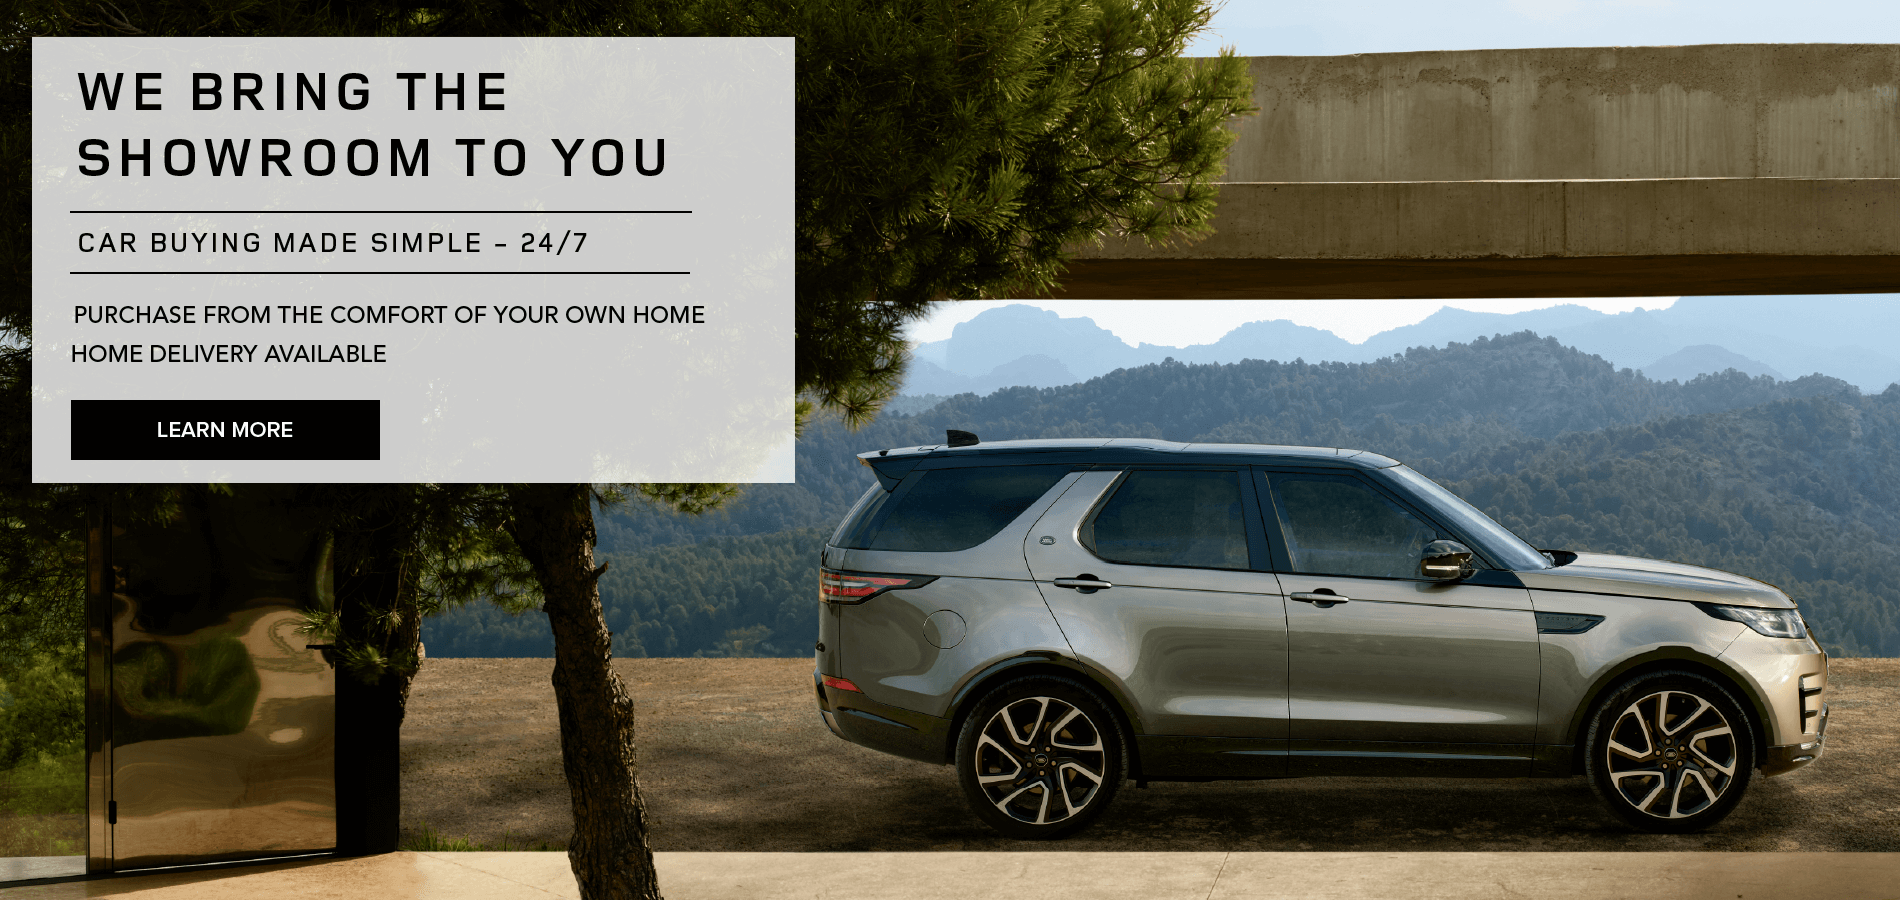 Land-Rover-We-Bring-The-Showroom-To-You Optimized